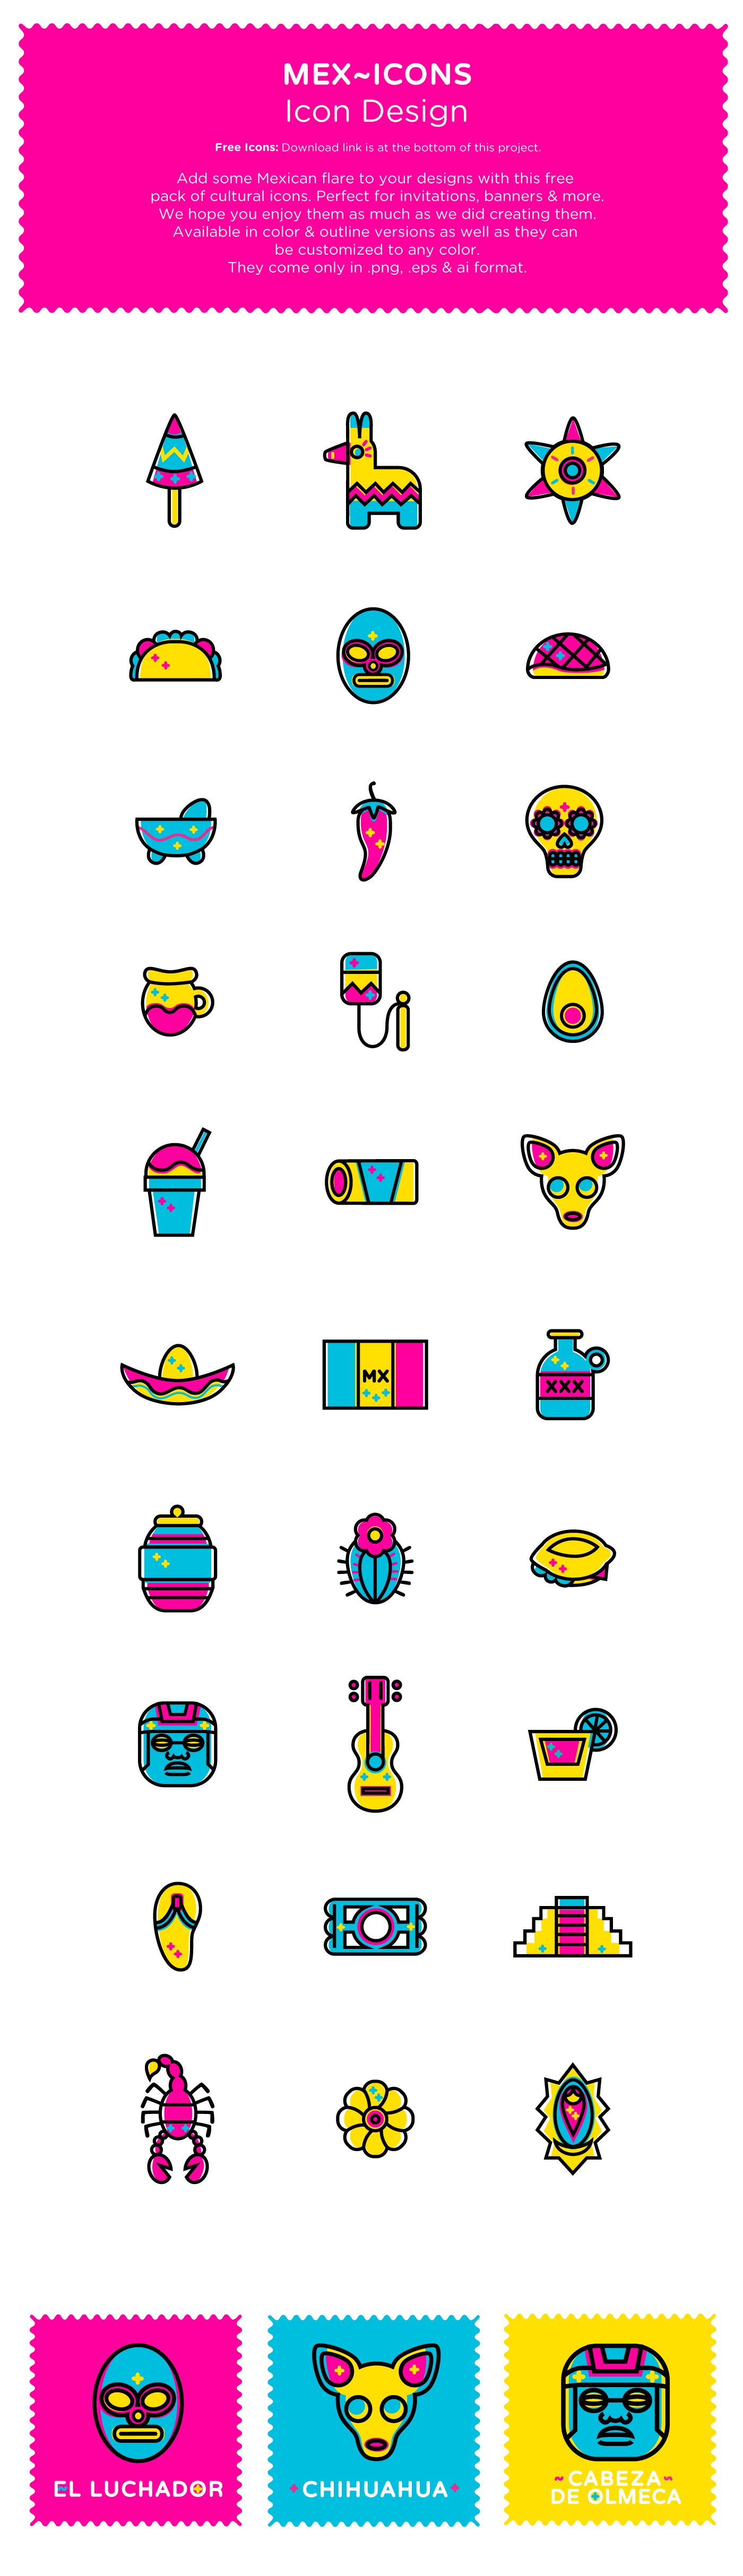 Mexicons